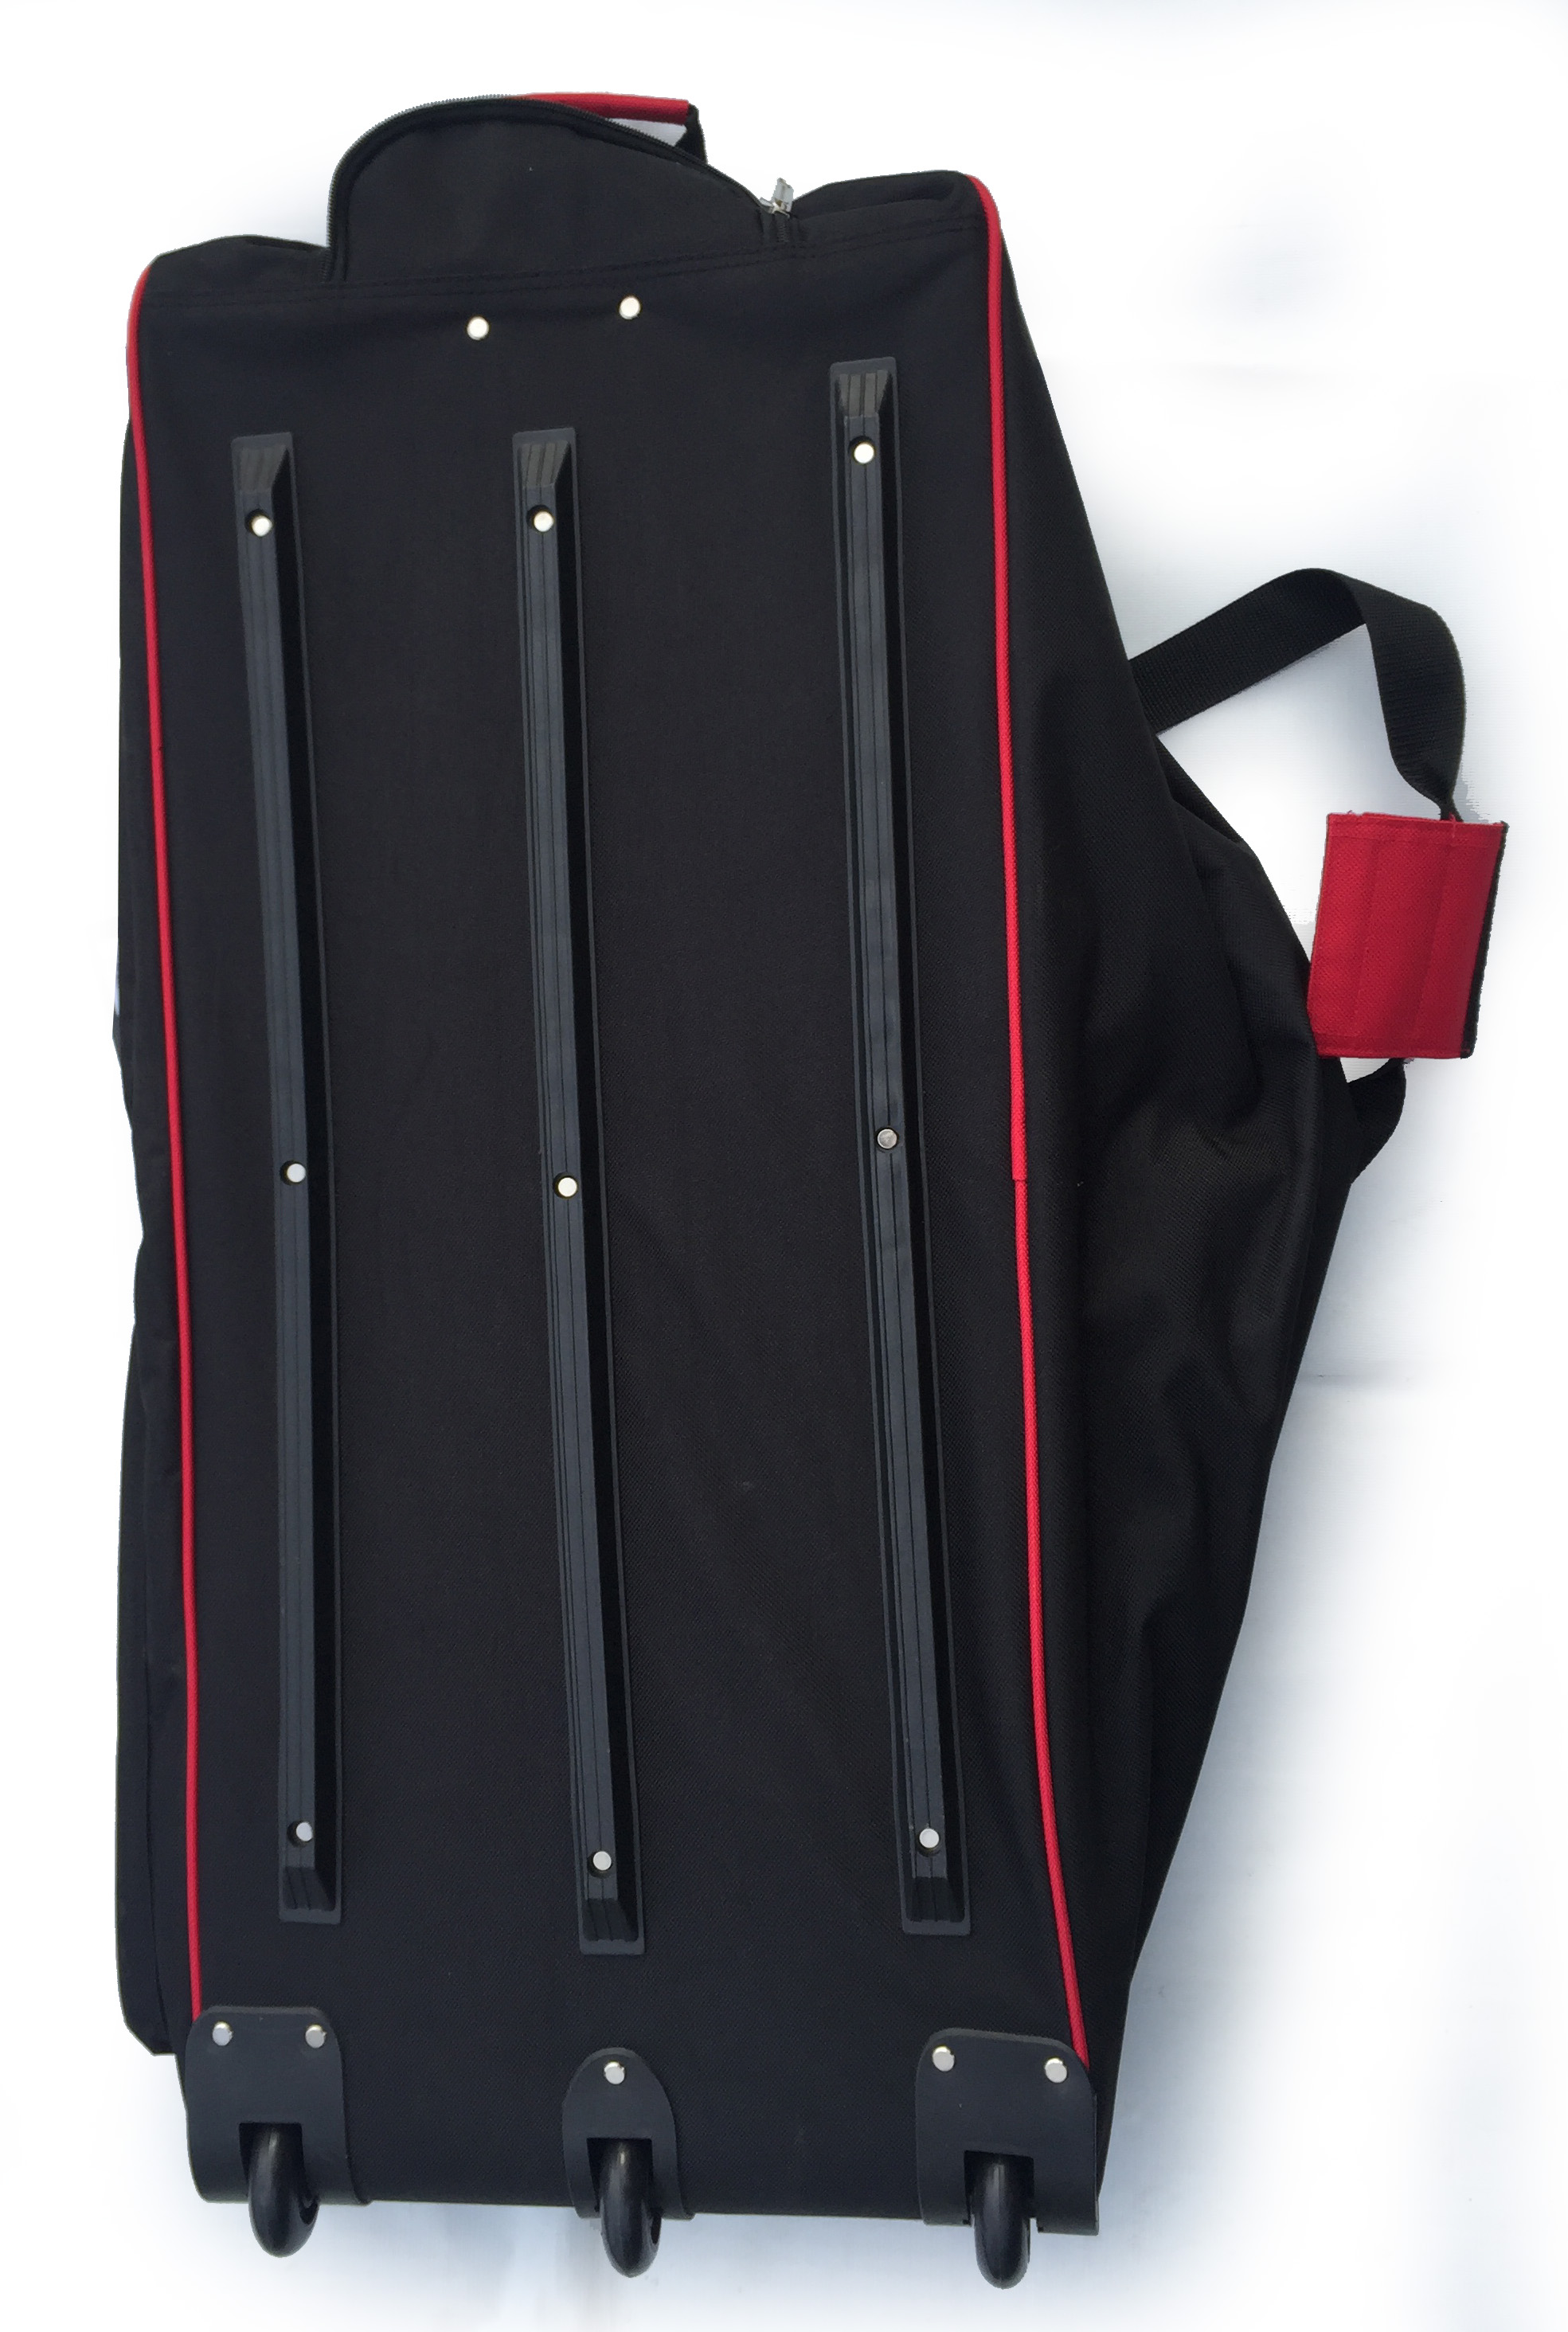 big red bag from under with 3 wheels and 3 protective rails all along